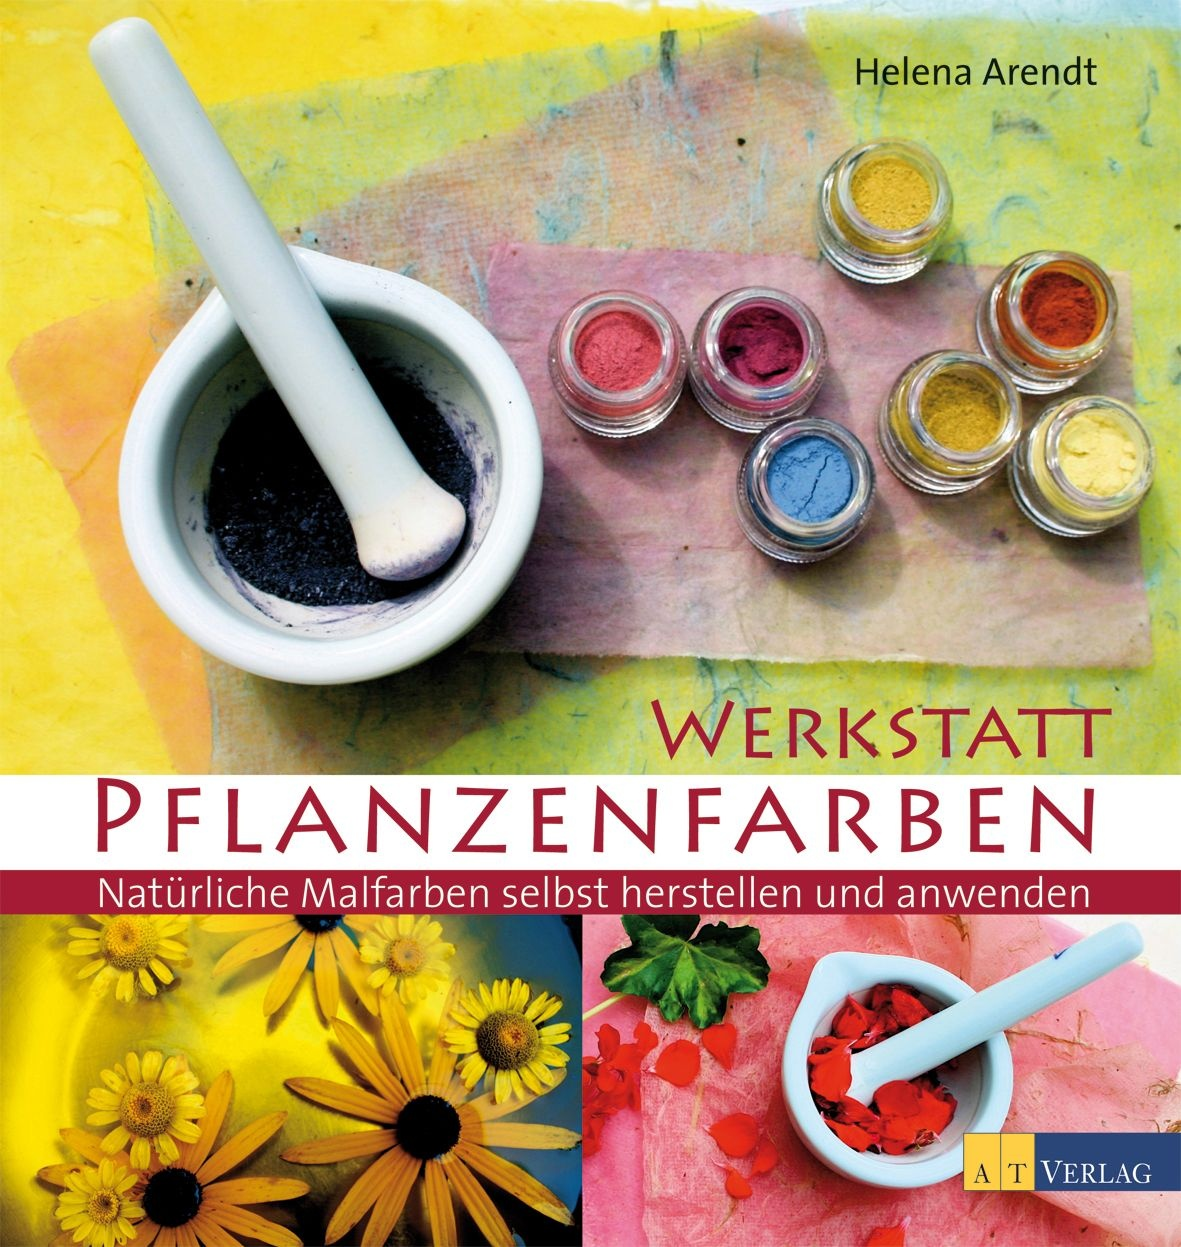 buch werkstatt pflanzenfarben von helena arendt at verlag. Black Bedroom Furniture Sets. Home Design Ideas